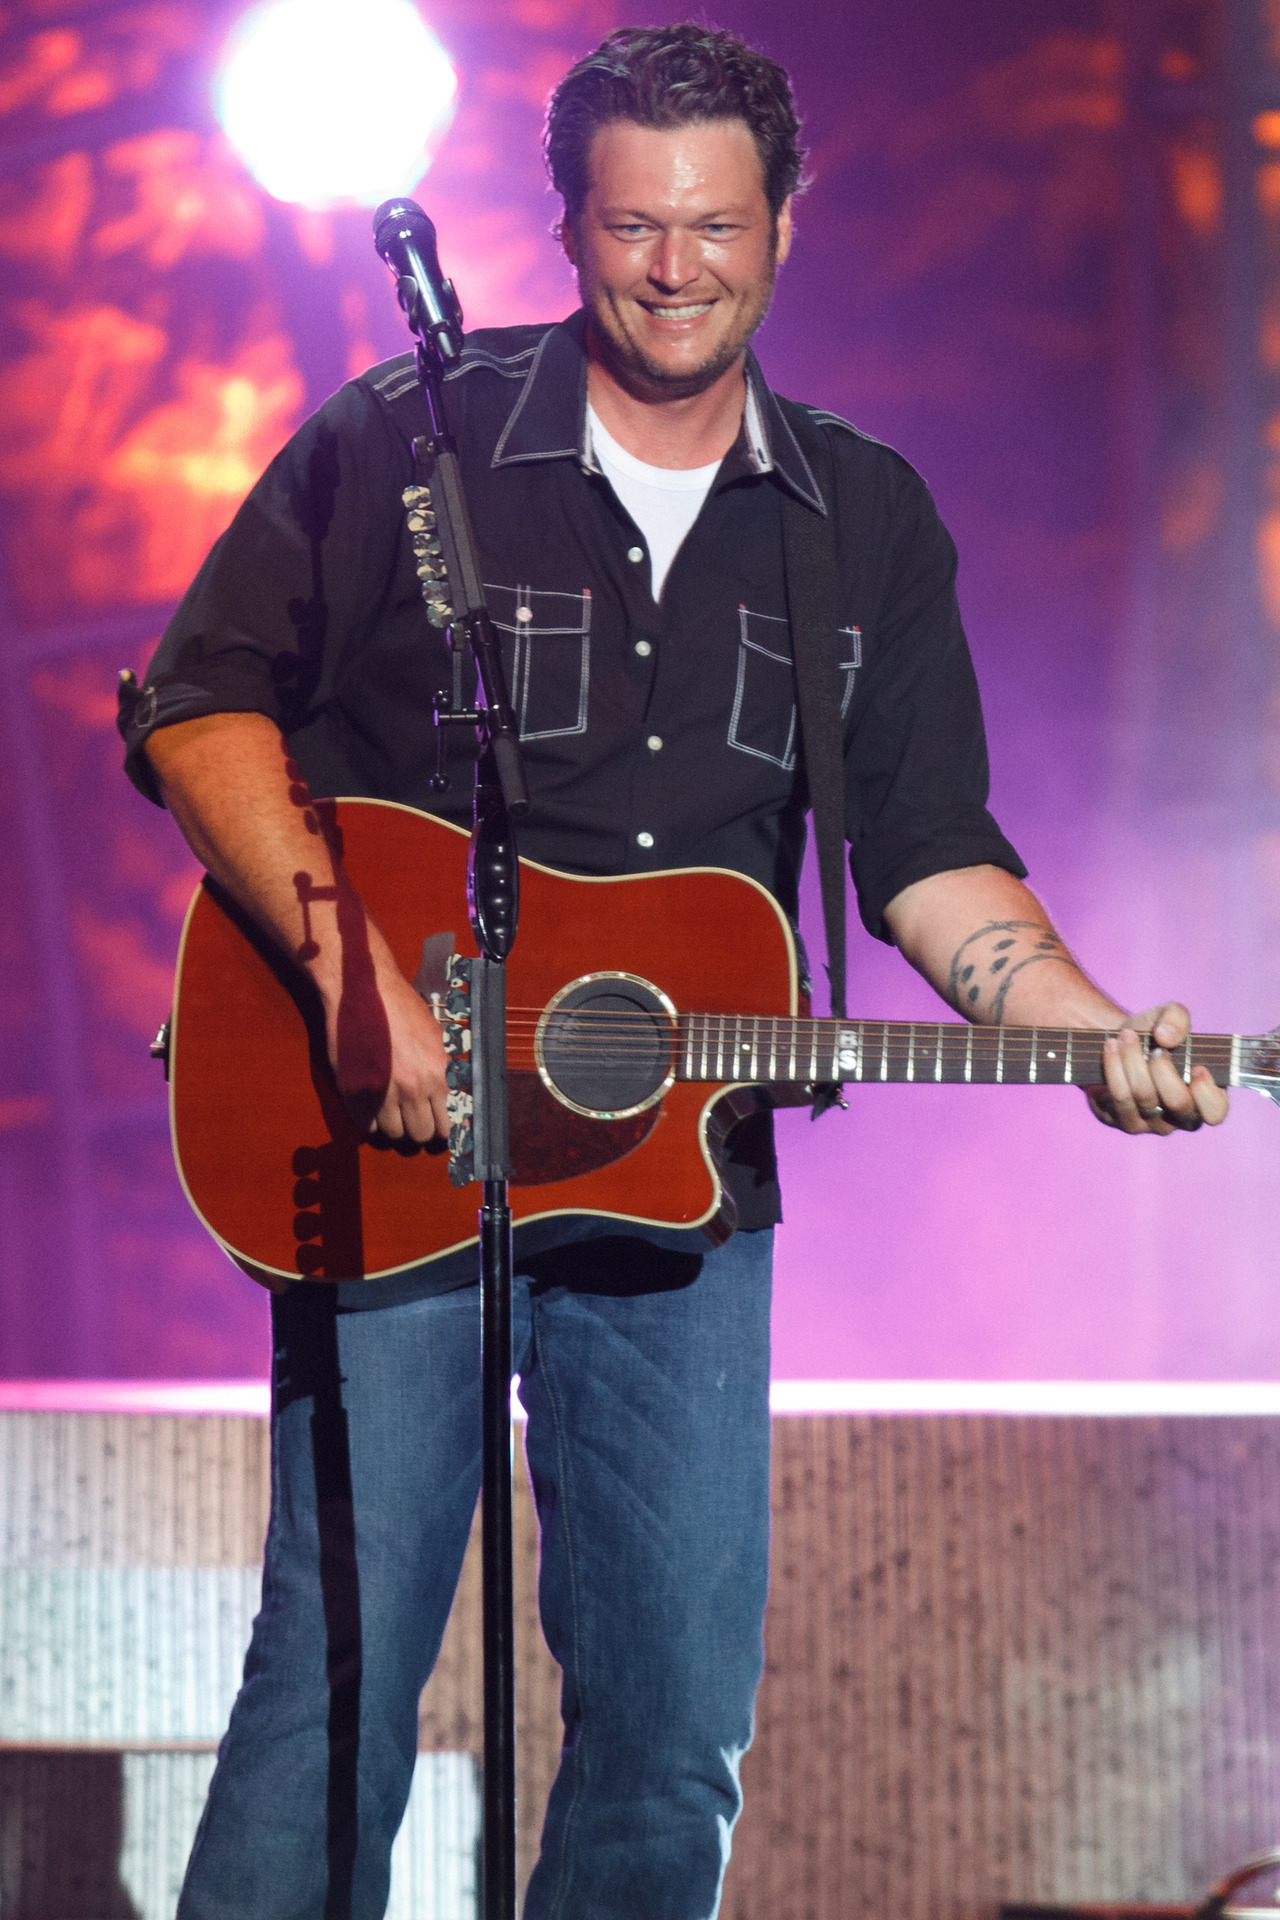 Blake Shelton at the Minnesota State Fair.